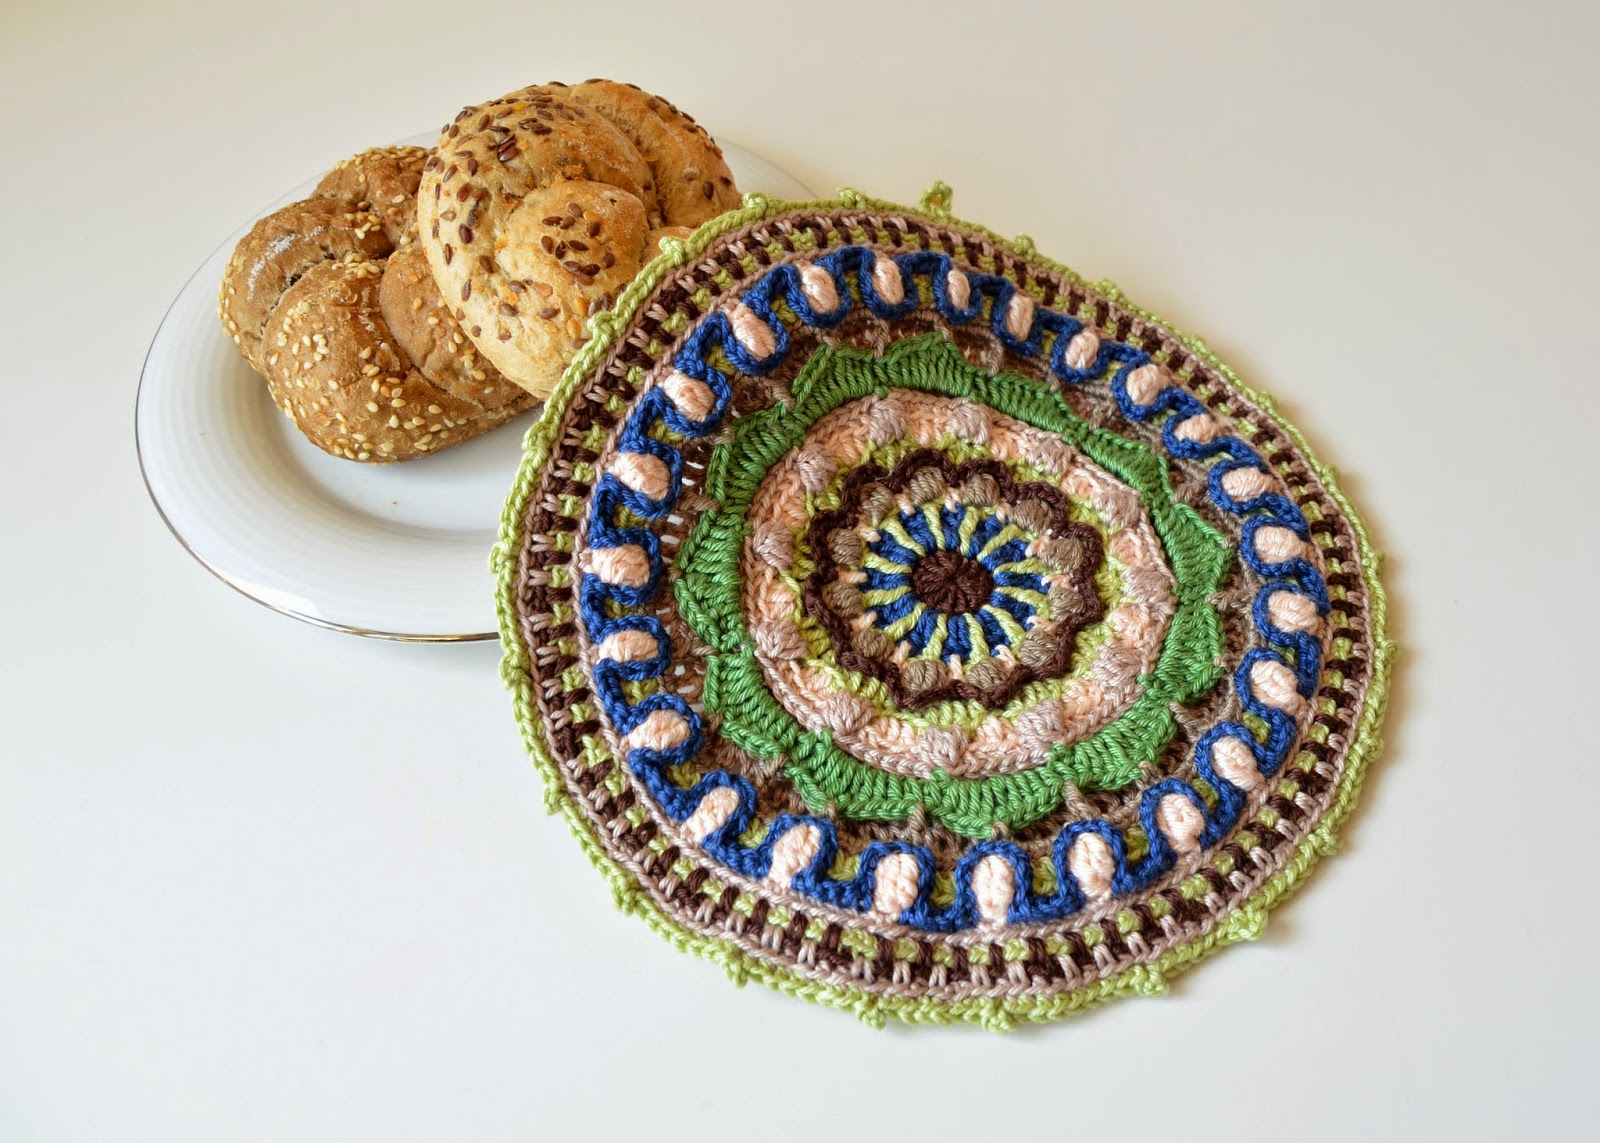 It is also possible to color mandalas in crochet - with yarn